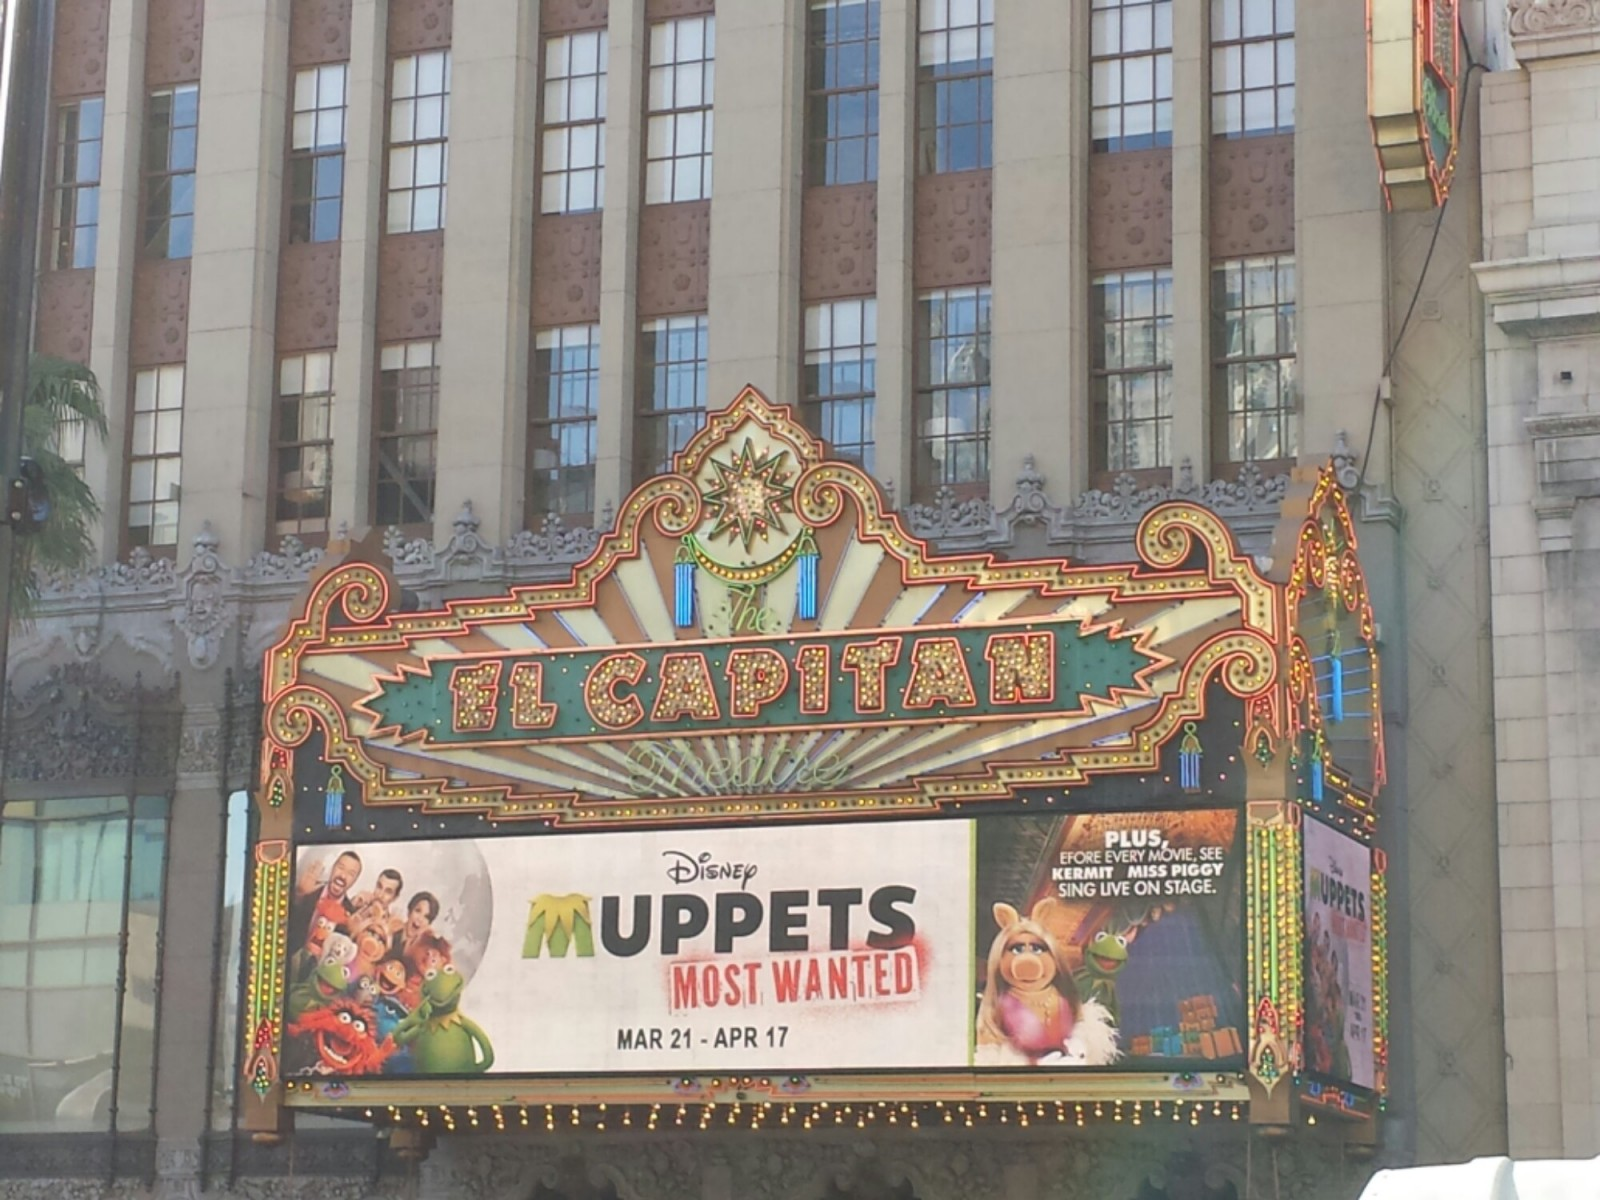 This morning in Hollywood for a #MuppetsMostWanted screening at the El Capitan